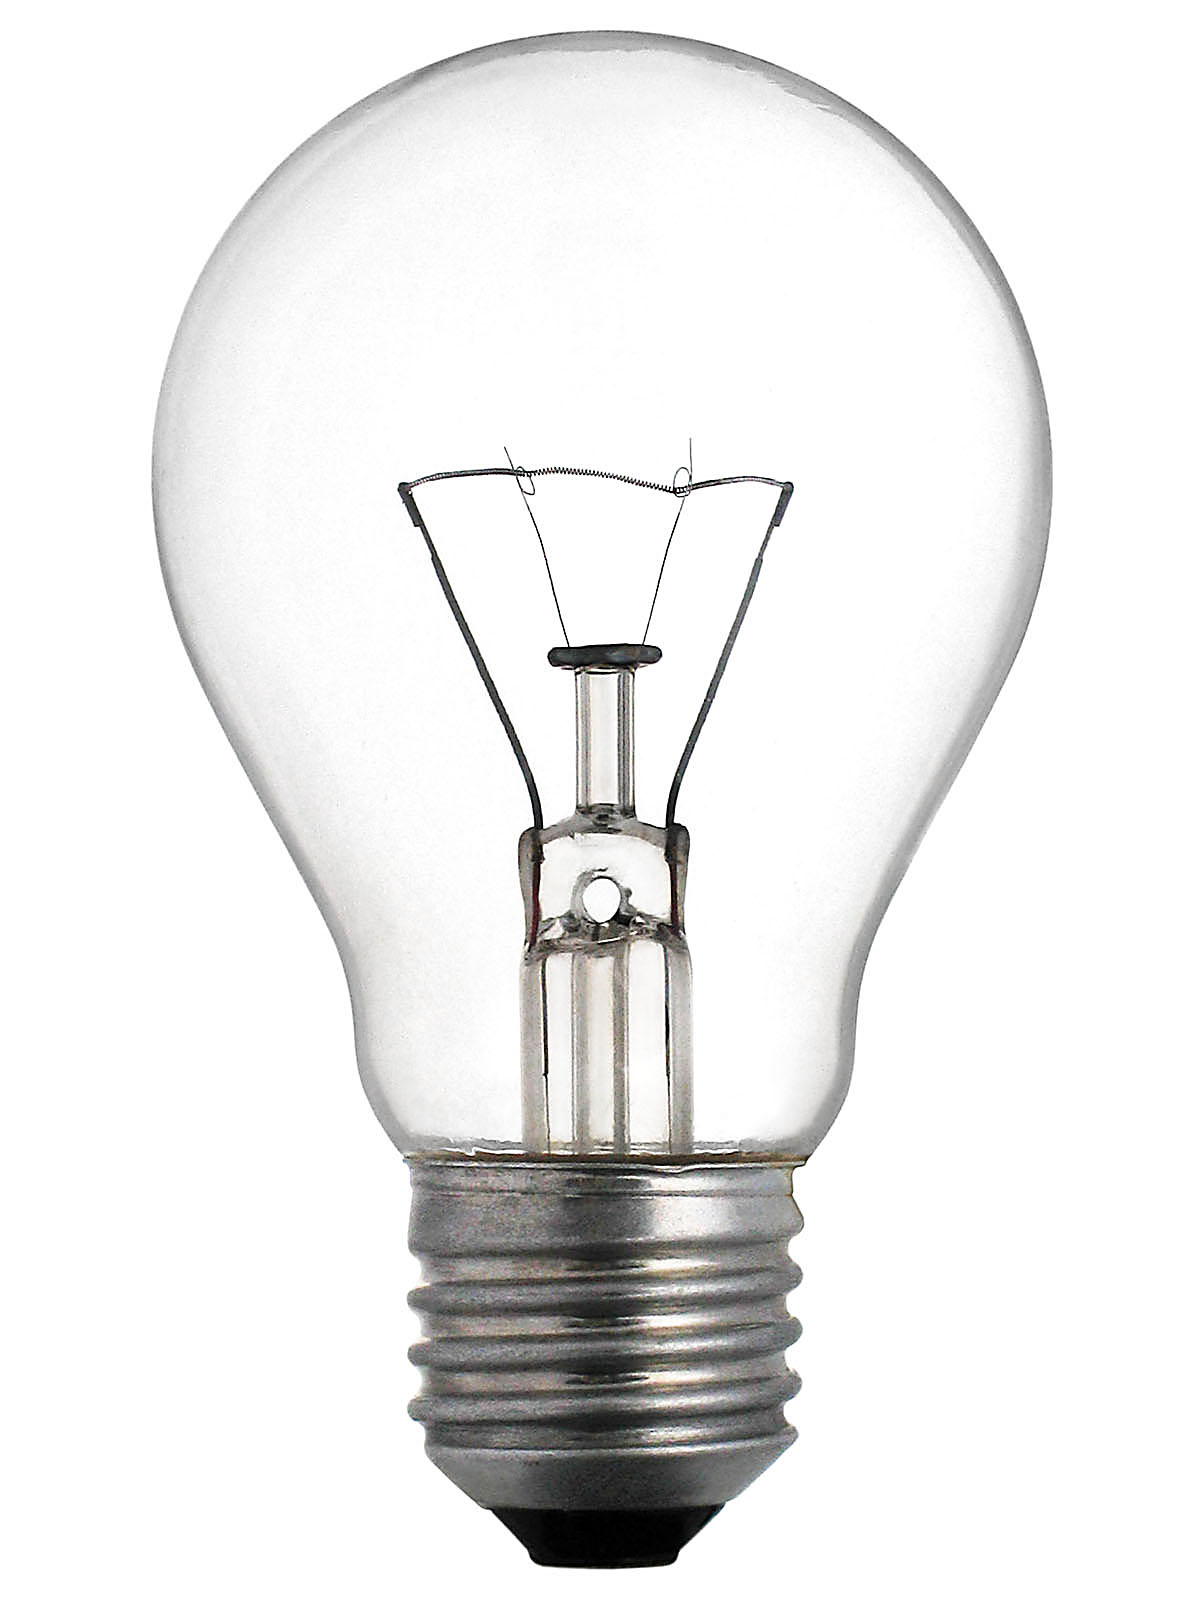 Why We Ban Incandescent Light Bulb